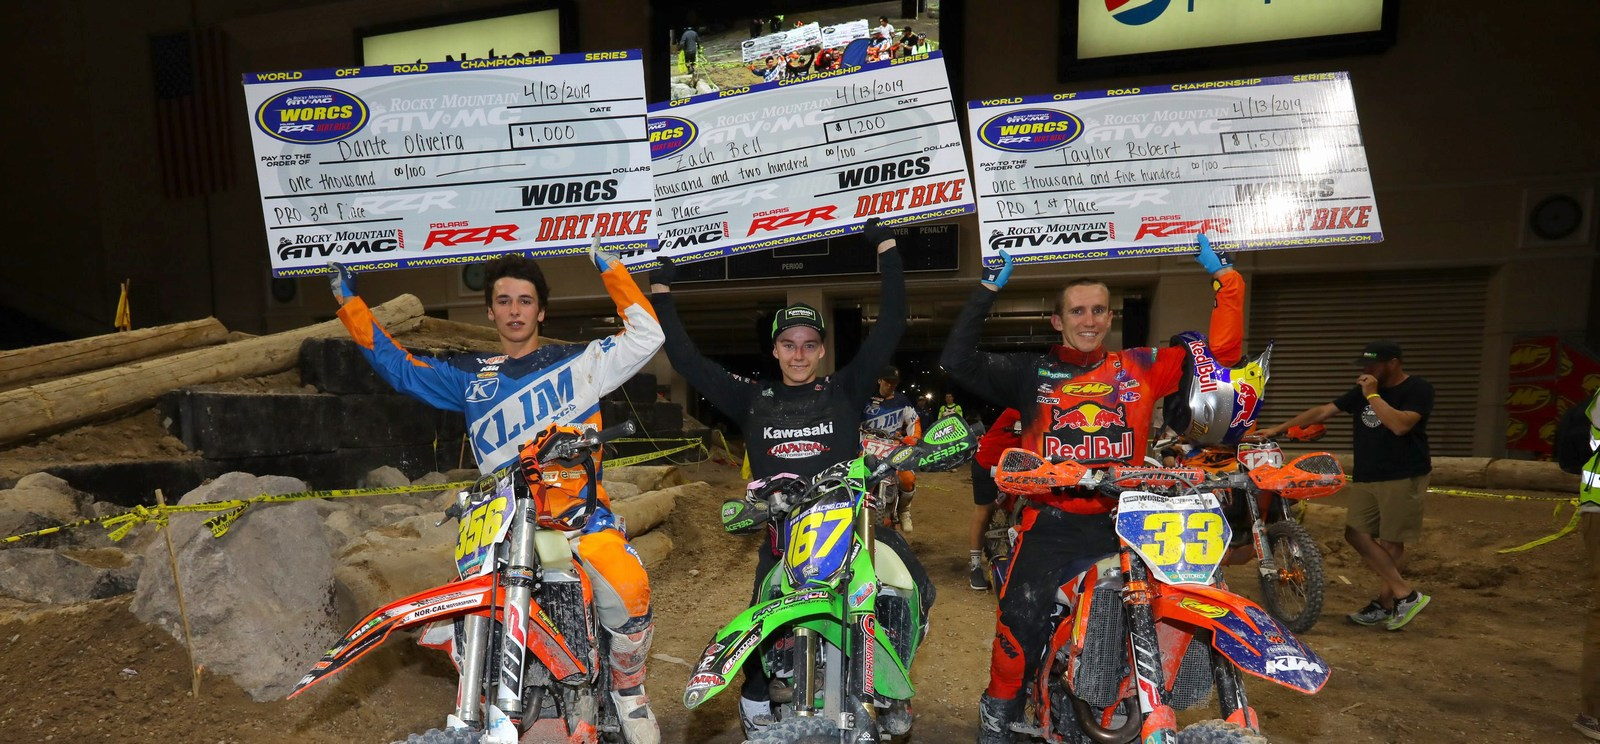 2019-05-podium-pro-bike-worcs-racing